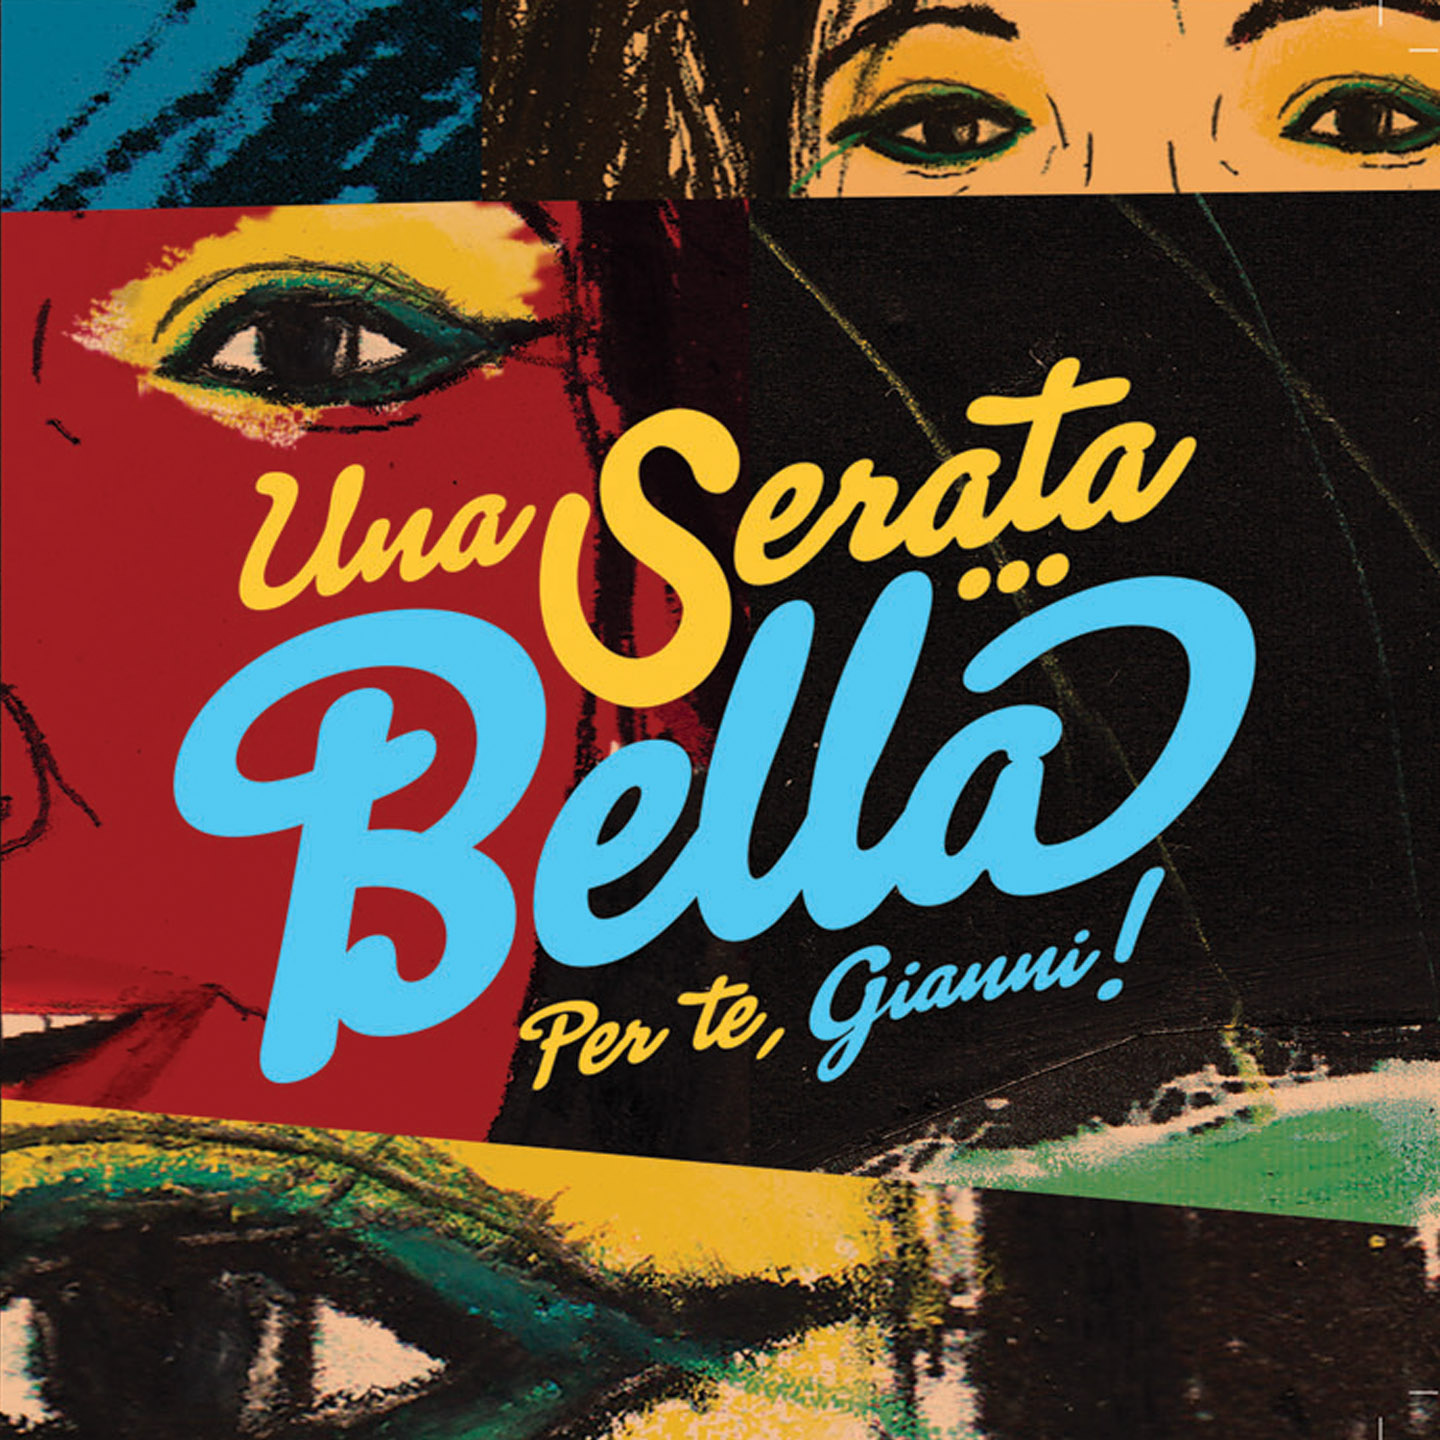 Una Serata Bella Per Te Gianni - Montagne Verdi, Io Domani, Nell'Aria, And Other 14 Hits